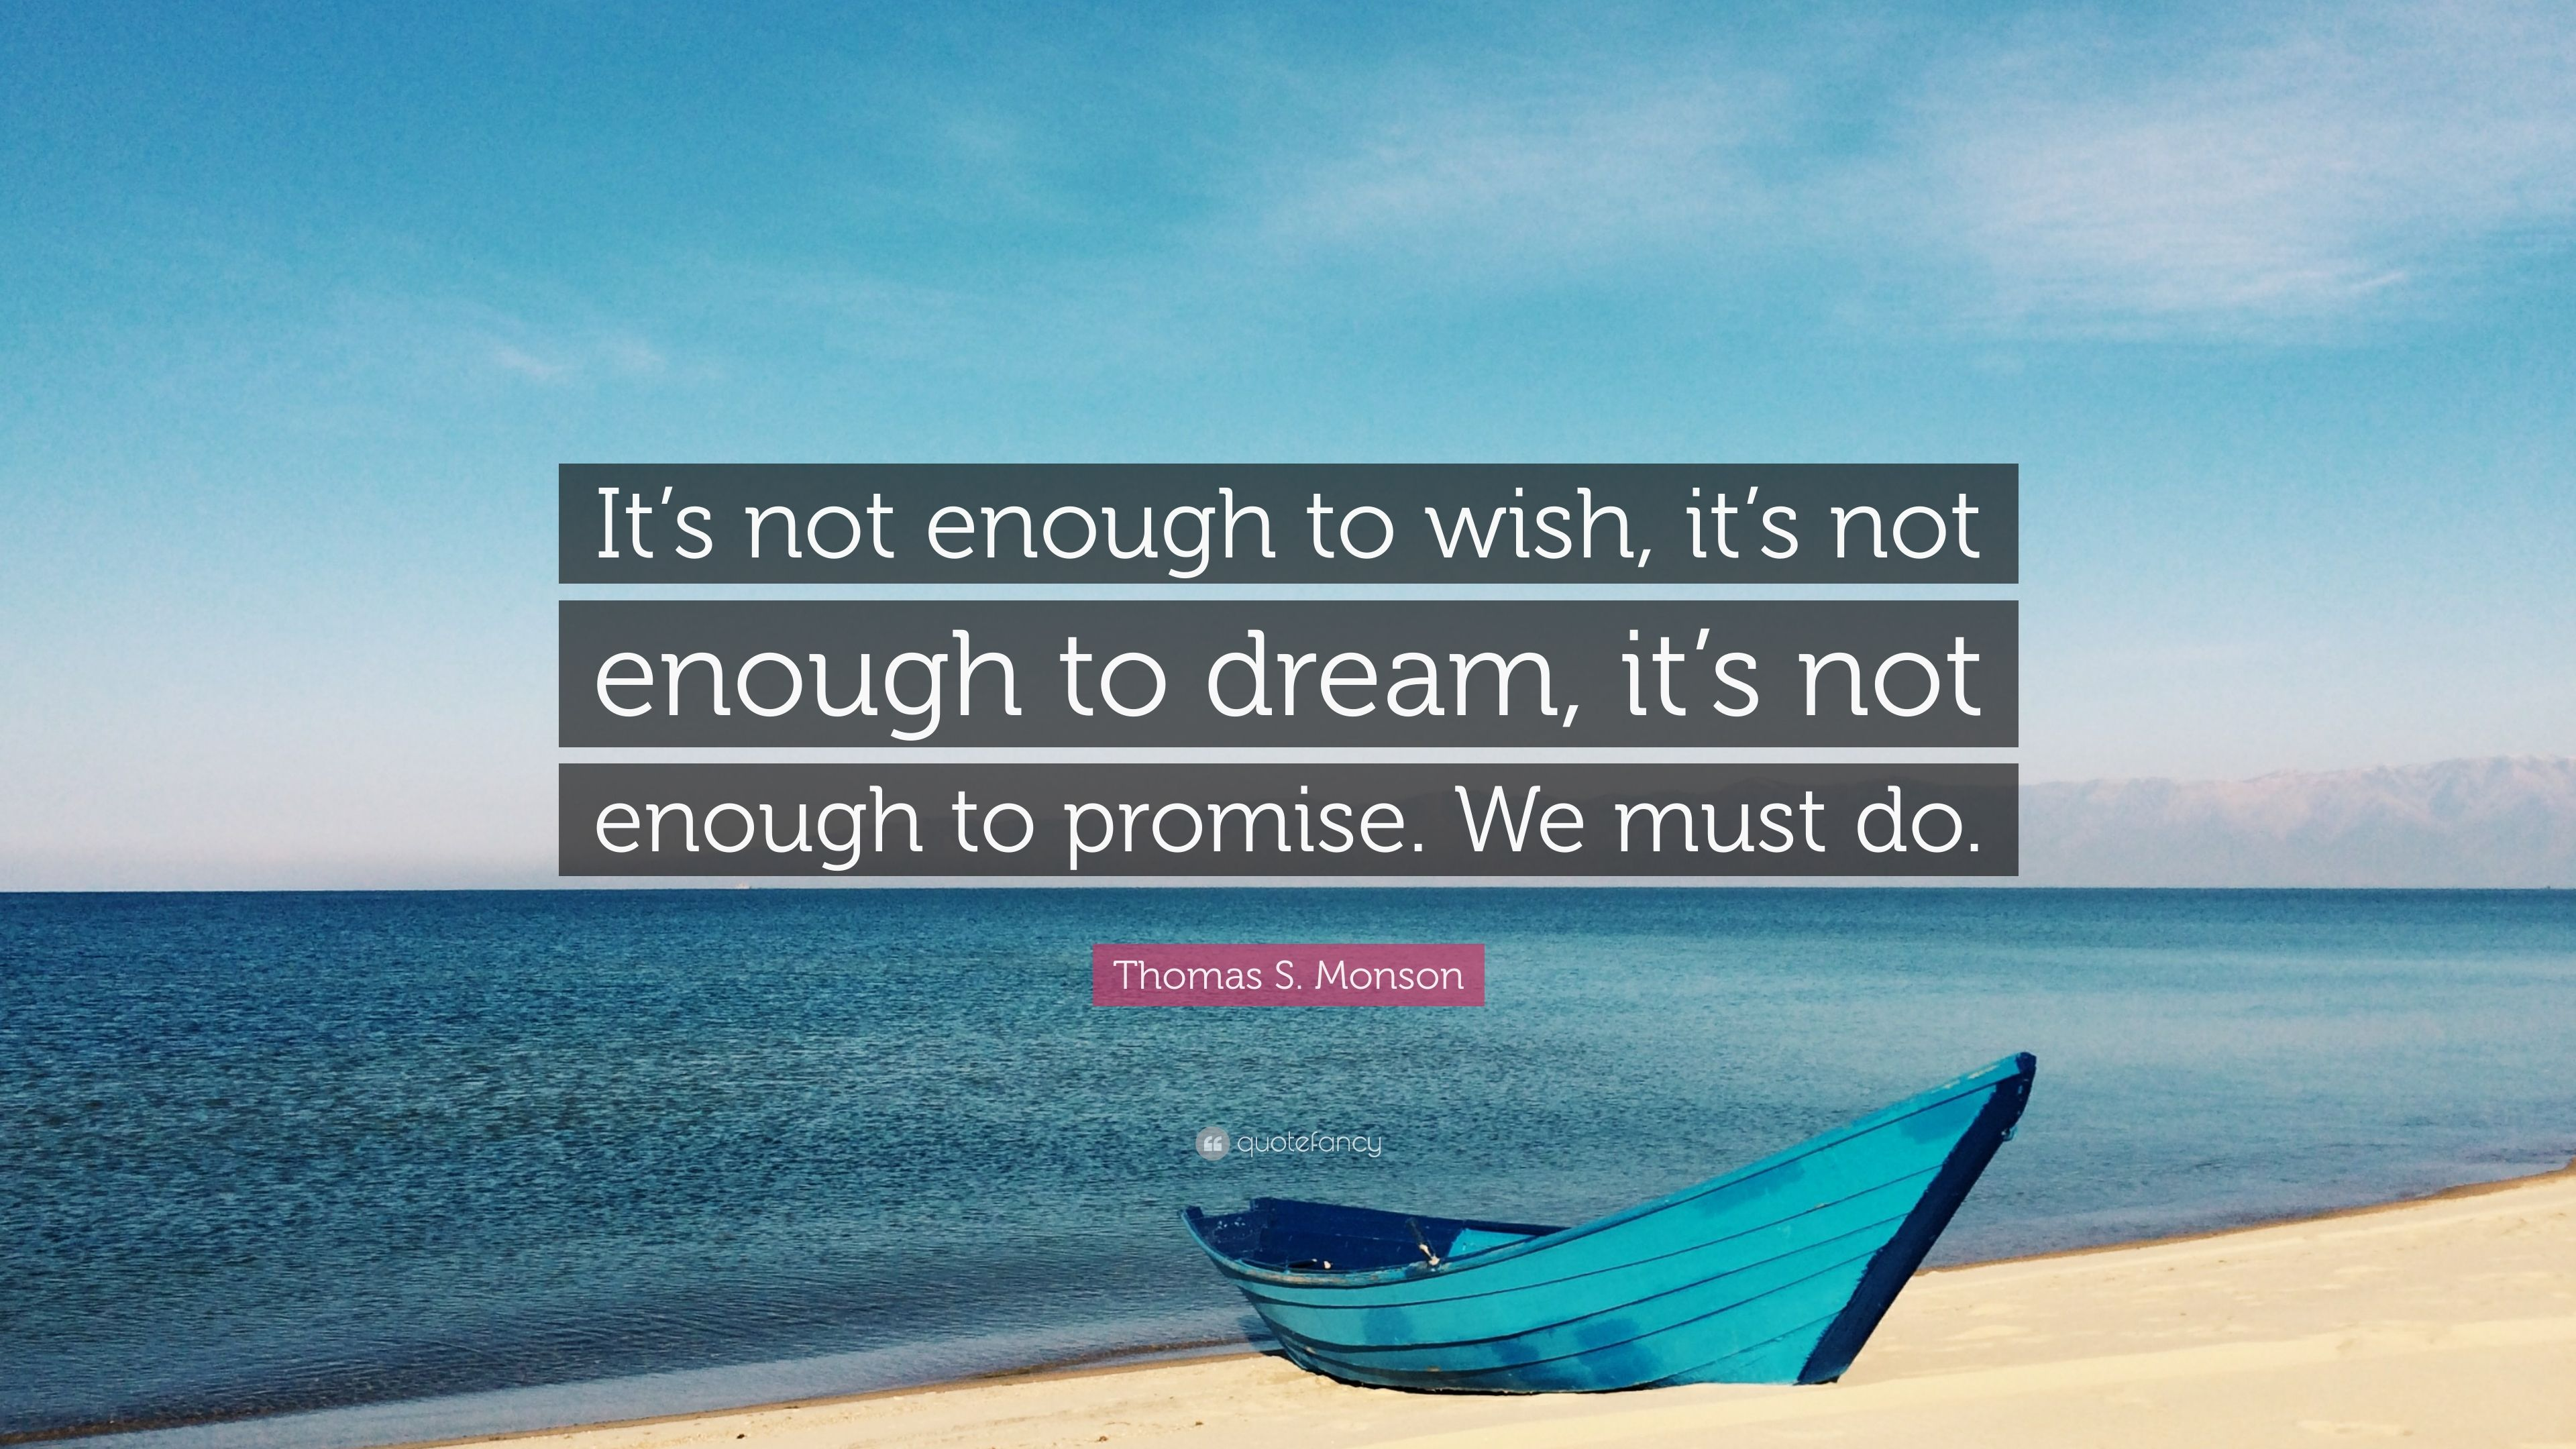 Great Thomas S. Monson Quote: U201cItu0027s Not Enough To Wish, Itu0027s Not Enough